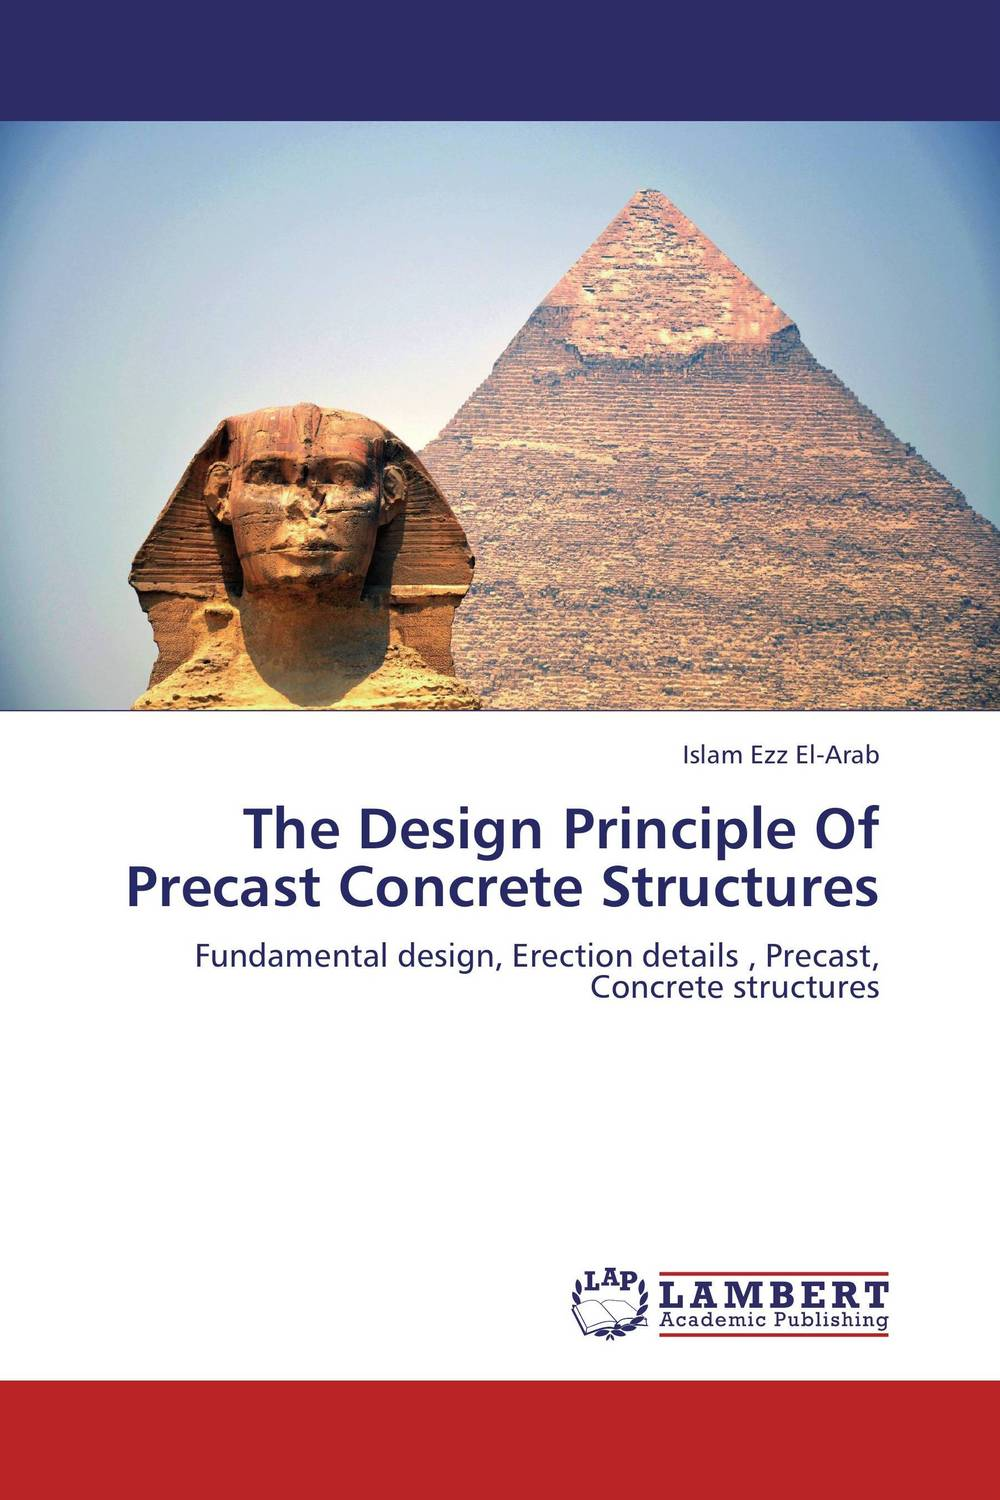 The Design Principle Of Precast Concrete Structures francis ching d k building structures illustrated patterns systems and design